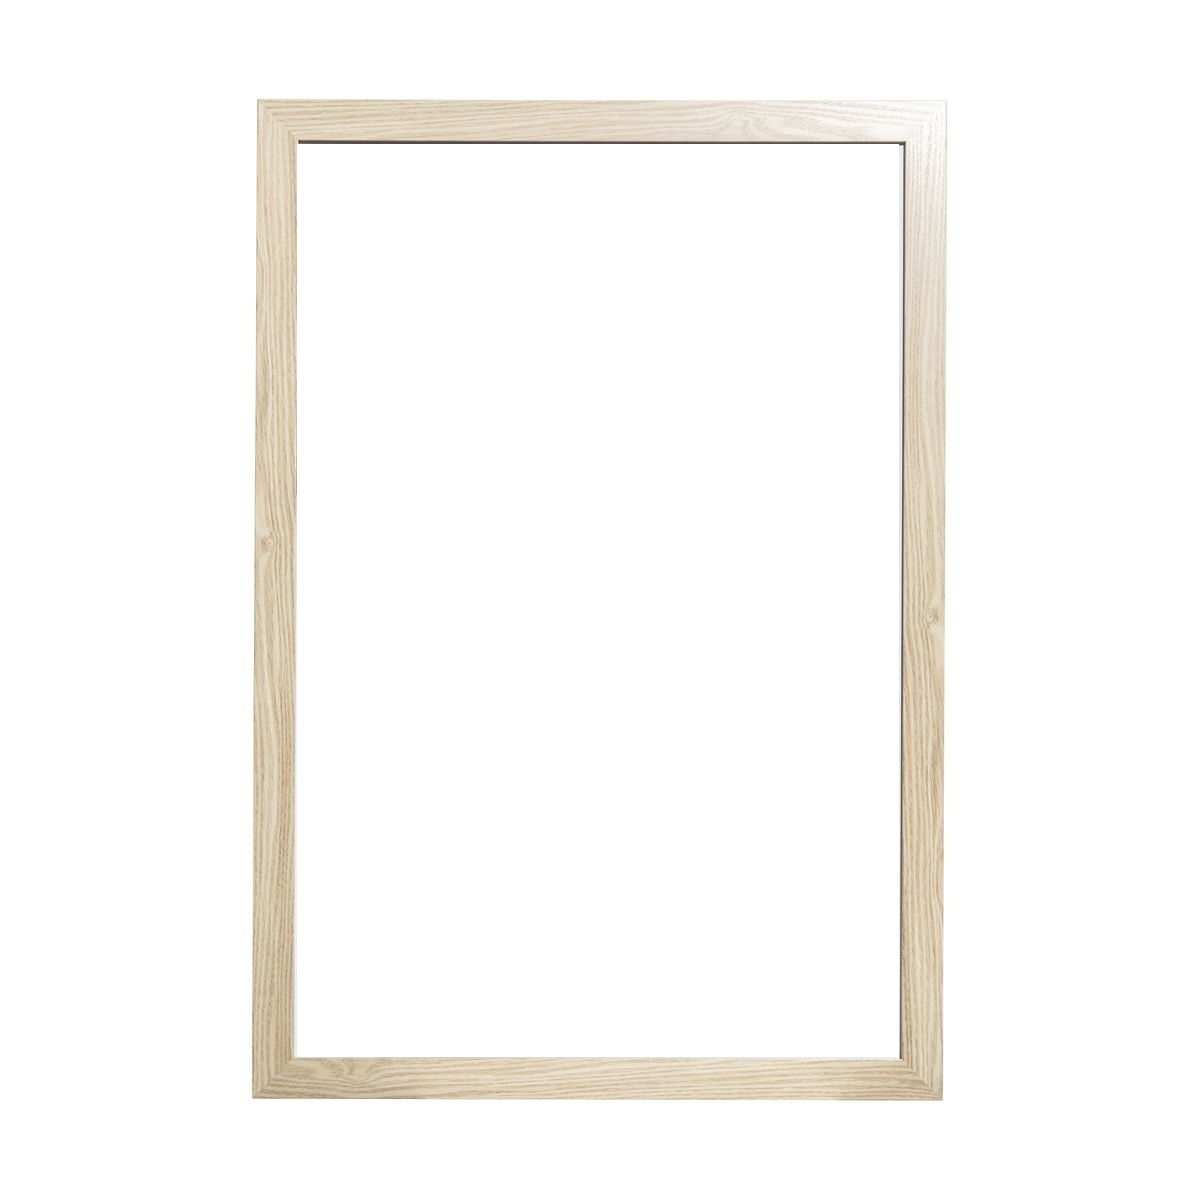 "Timber Frame 24 x 36""  Price: $8.00  Qty: 4"